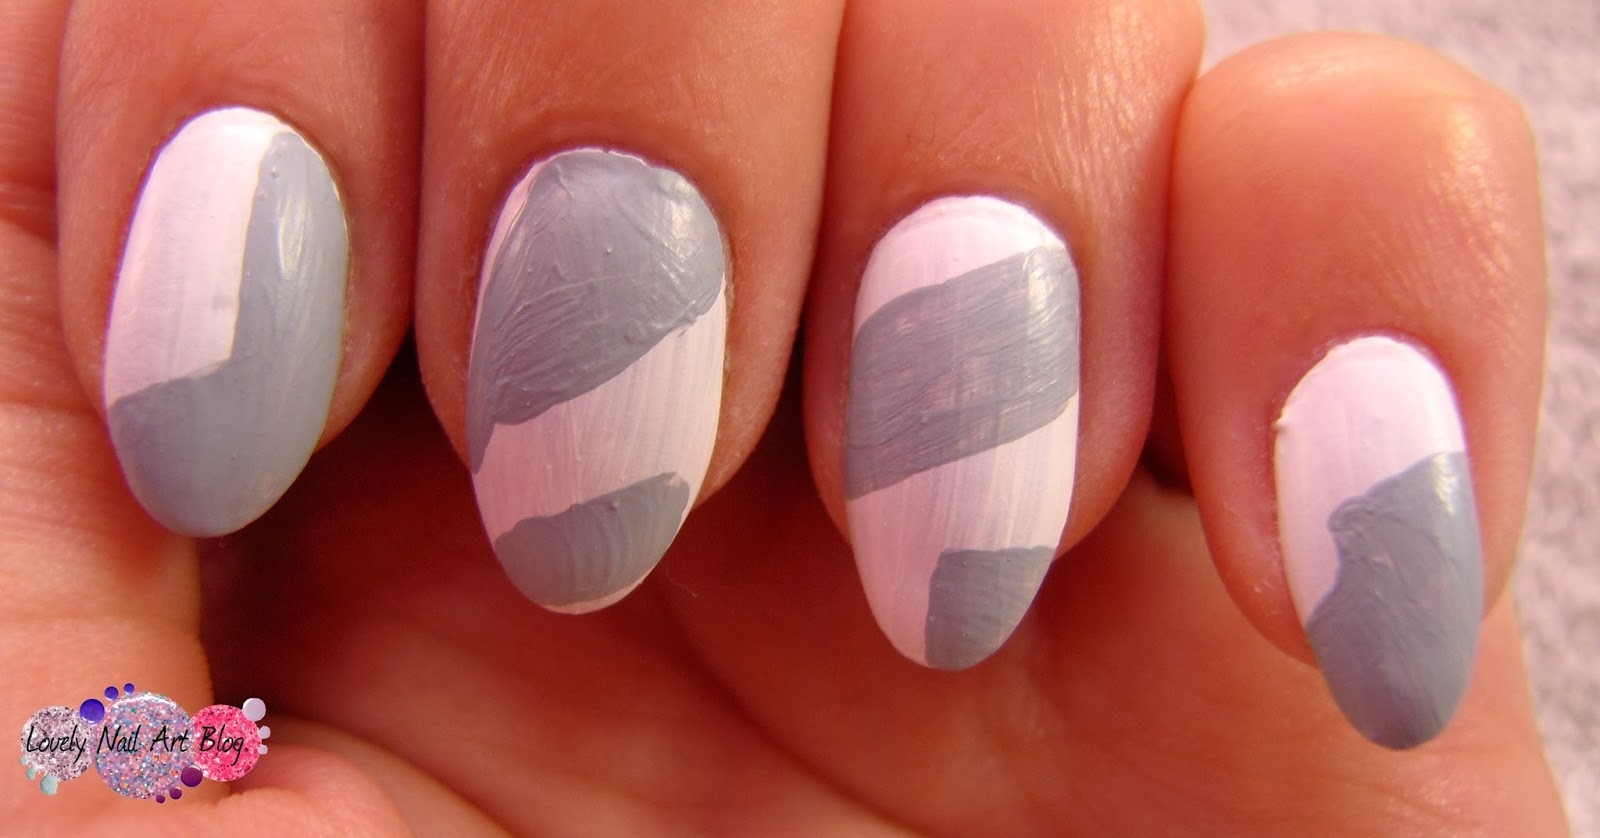 Lovely Nail Art: Abstract nail design - step by step!